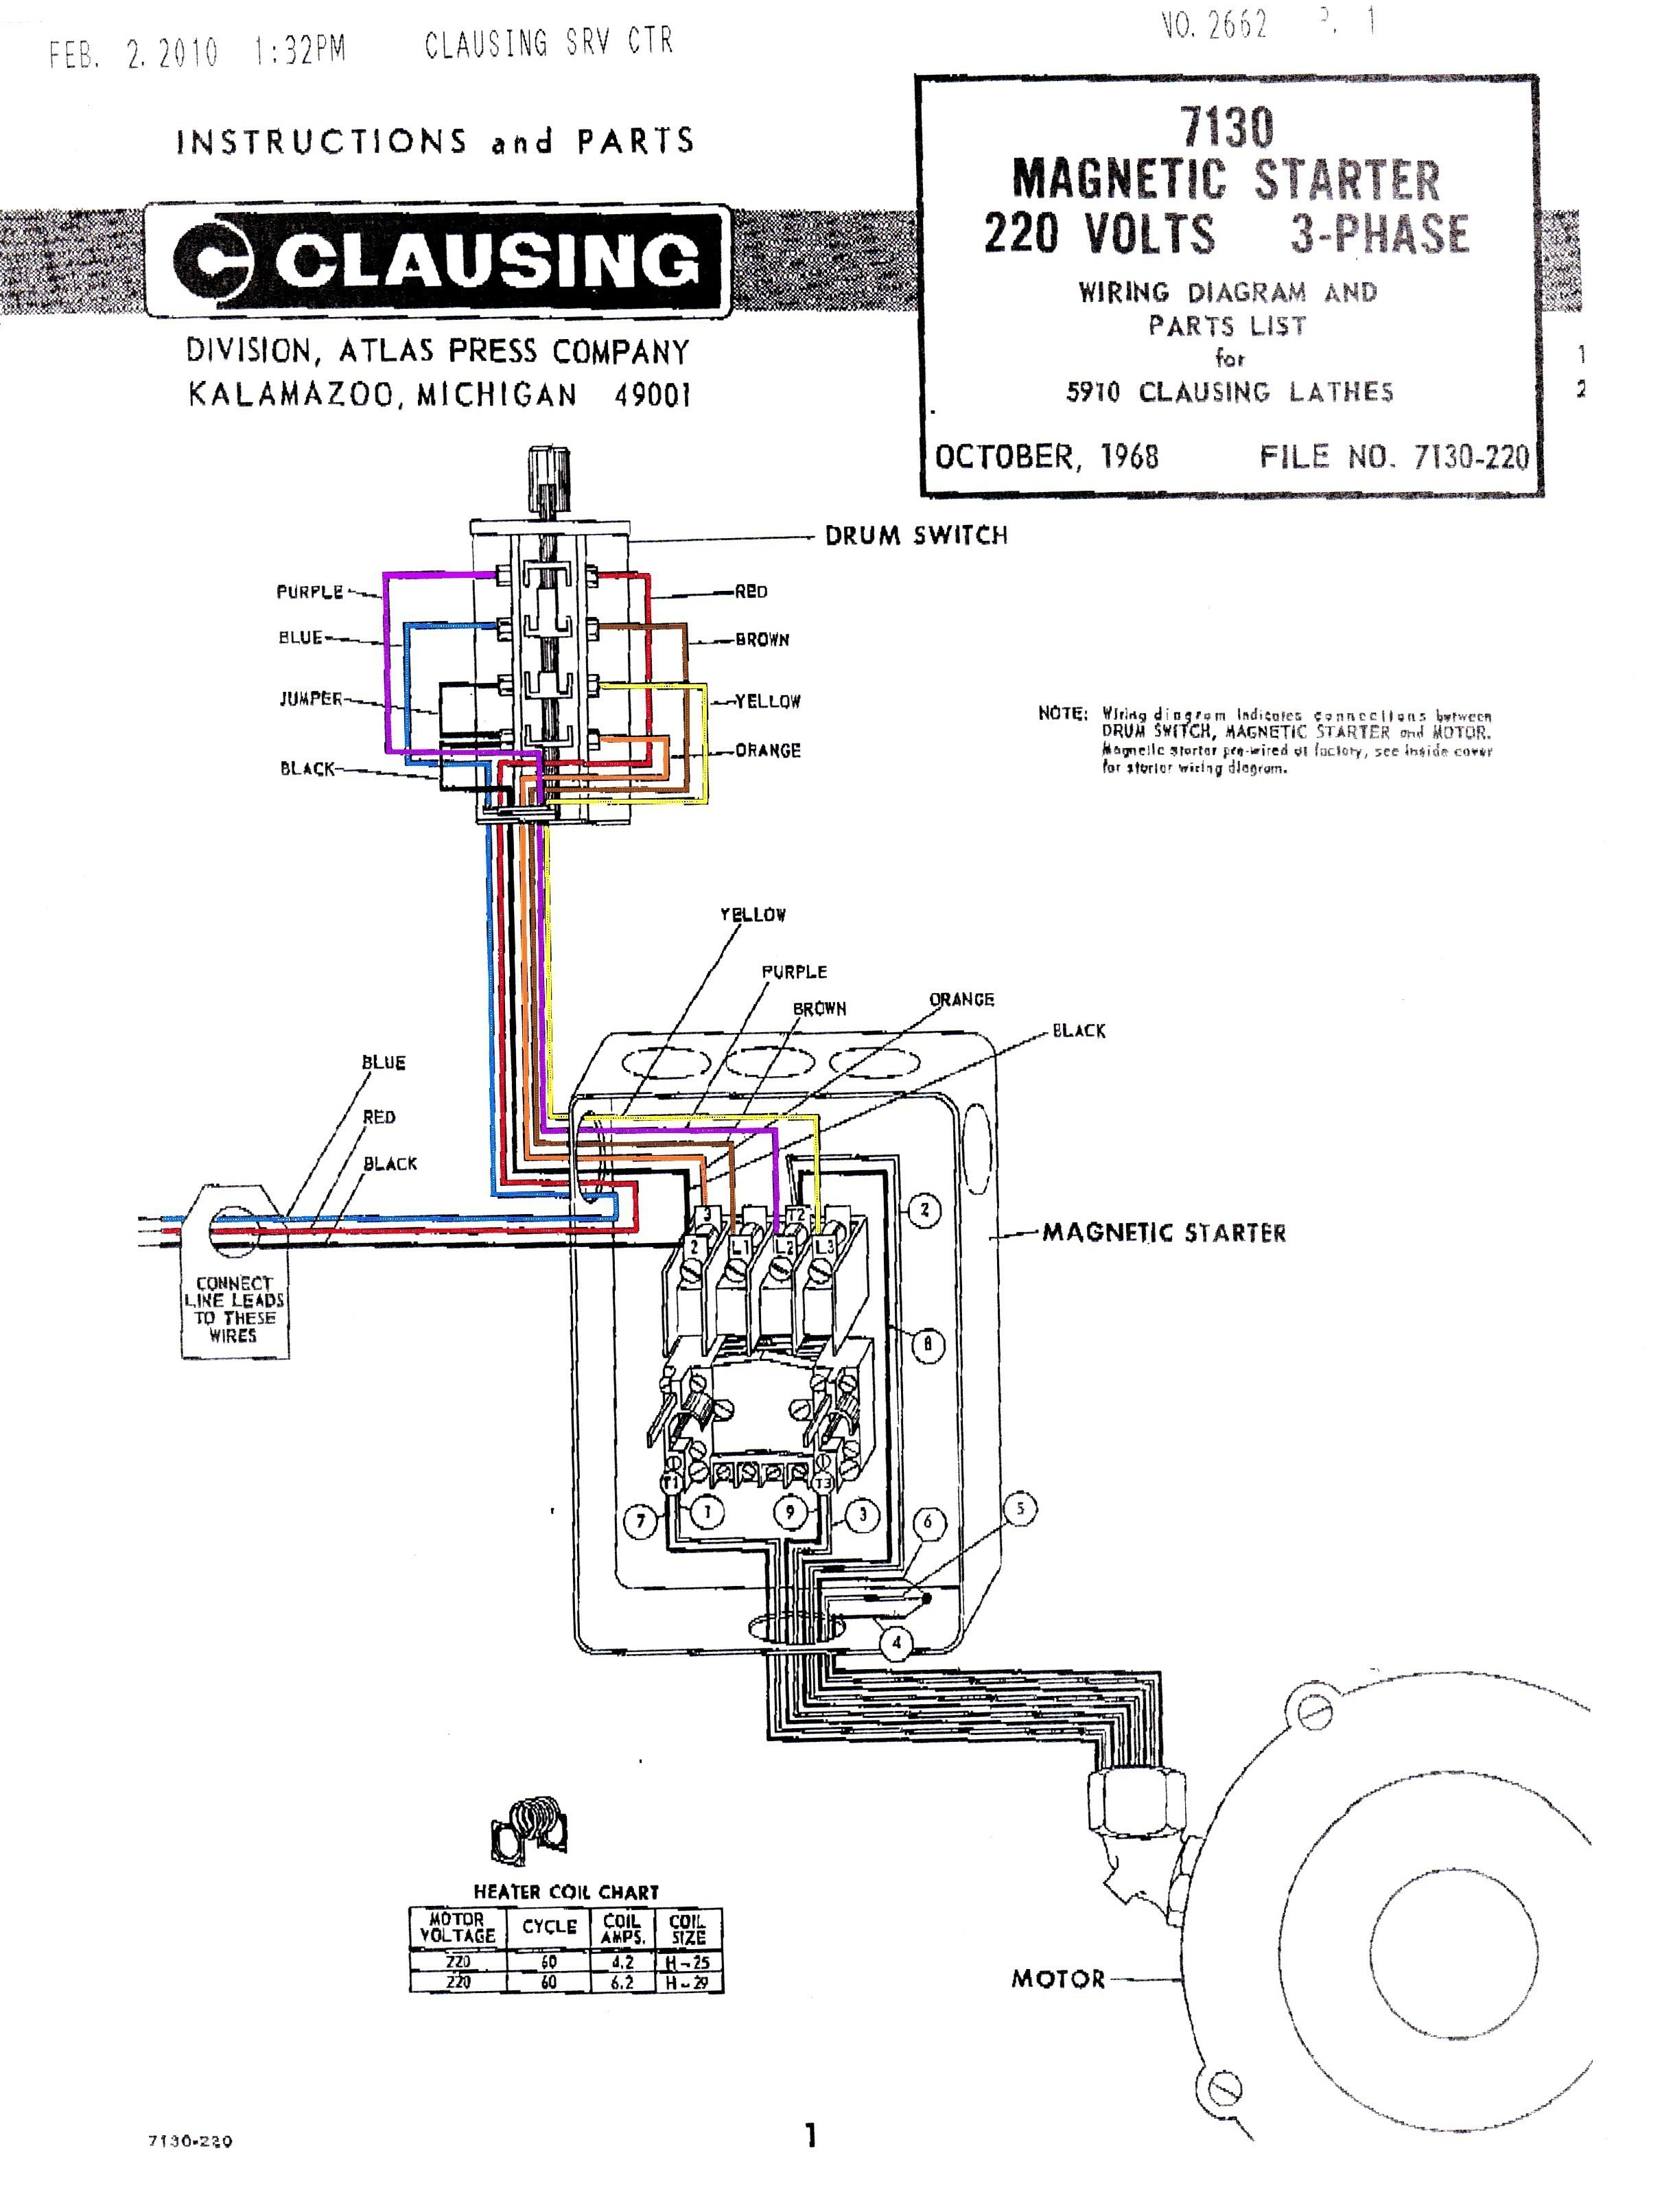 motor soft starter wiring diagram renault megane window siemens sample